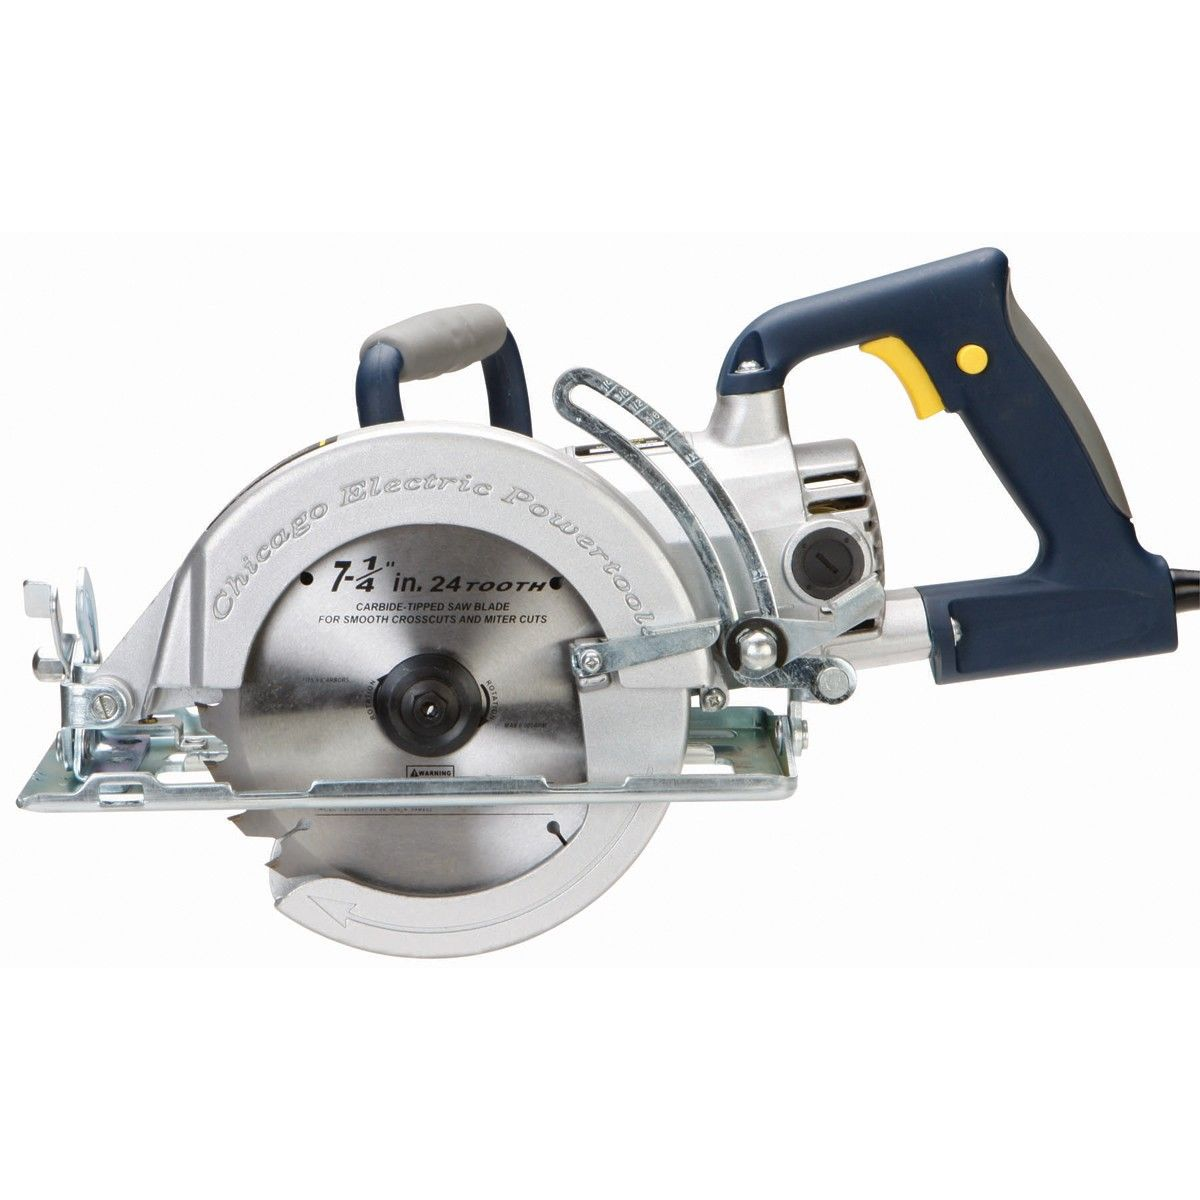 7 14 In 13 Amp Professional Worm Drive Framing Saw In 2018